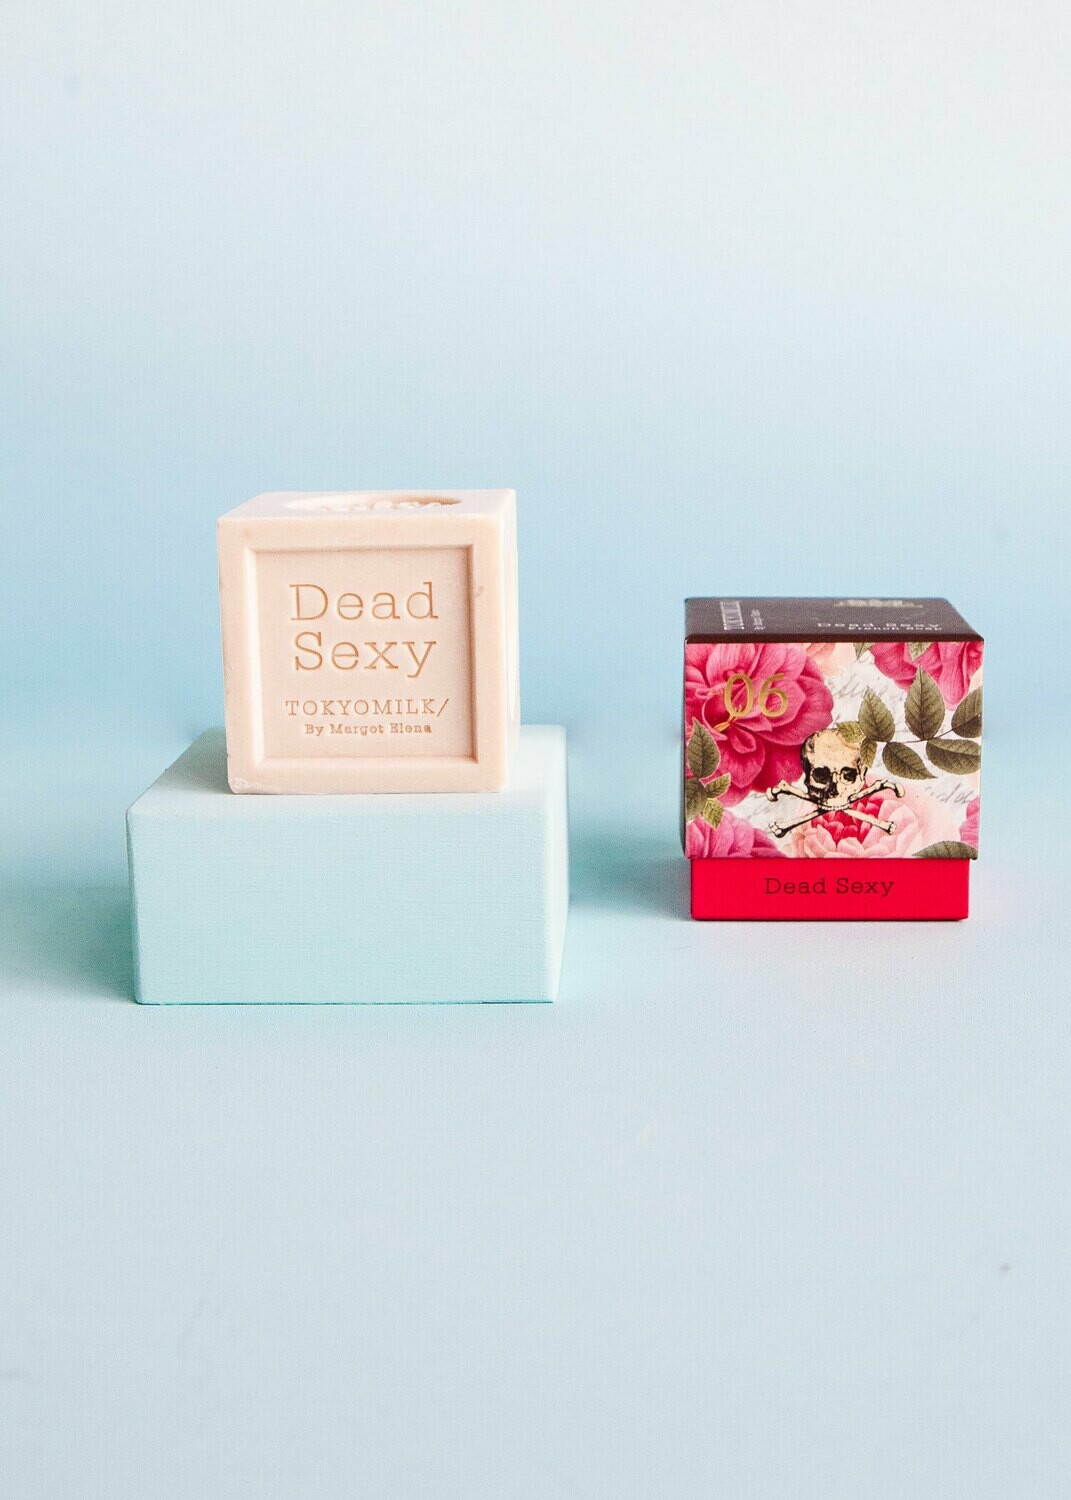 Dead Sexy Embossed Box Soap